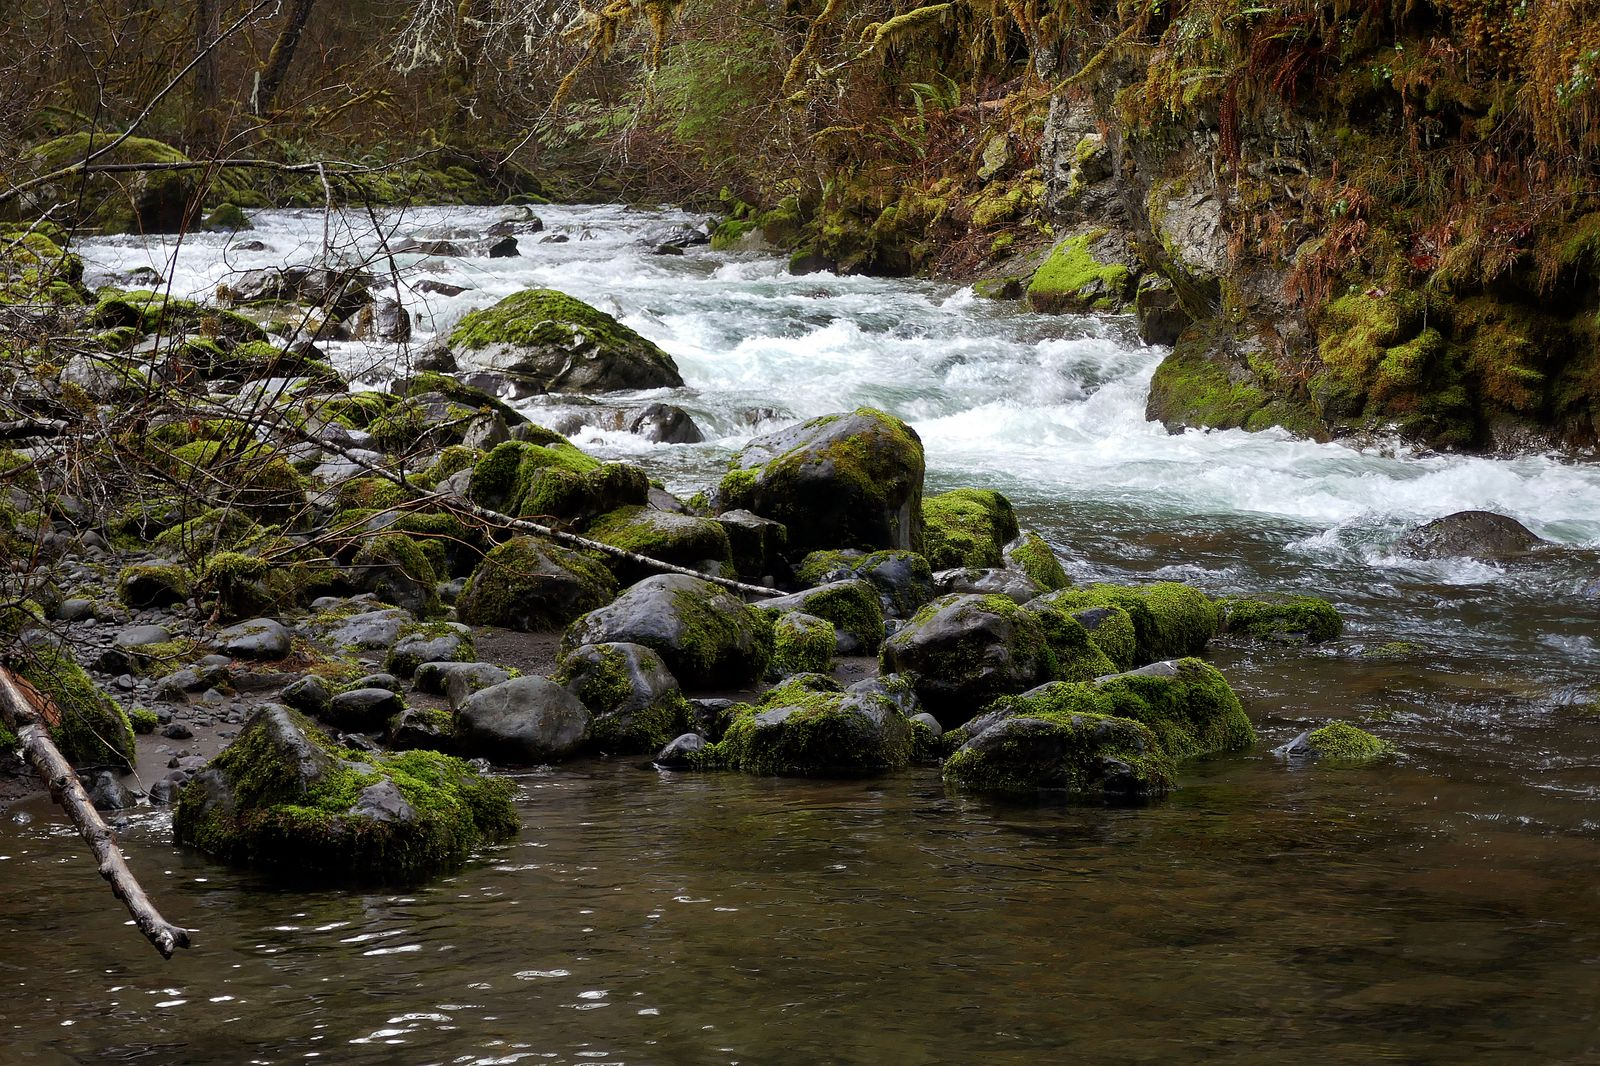 The rapids on the Big Quilcene River